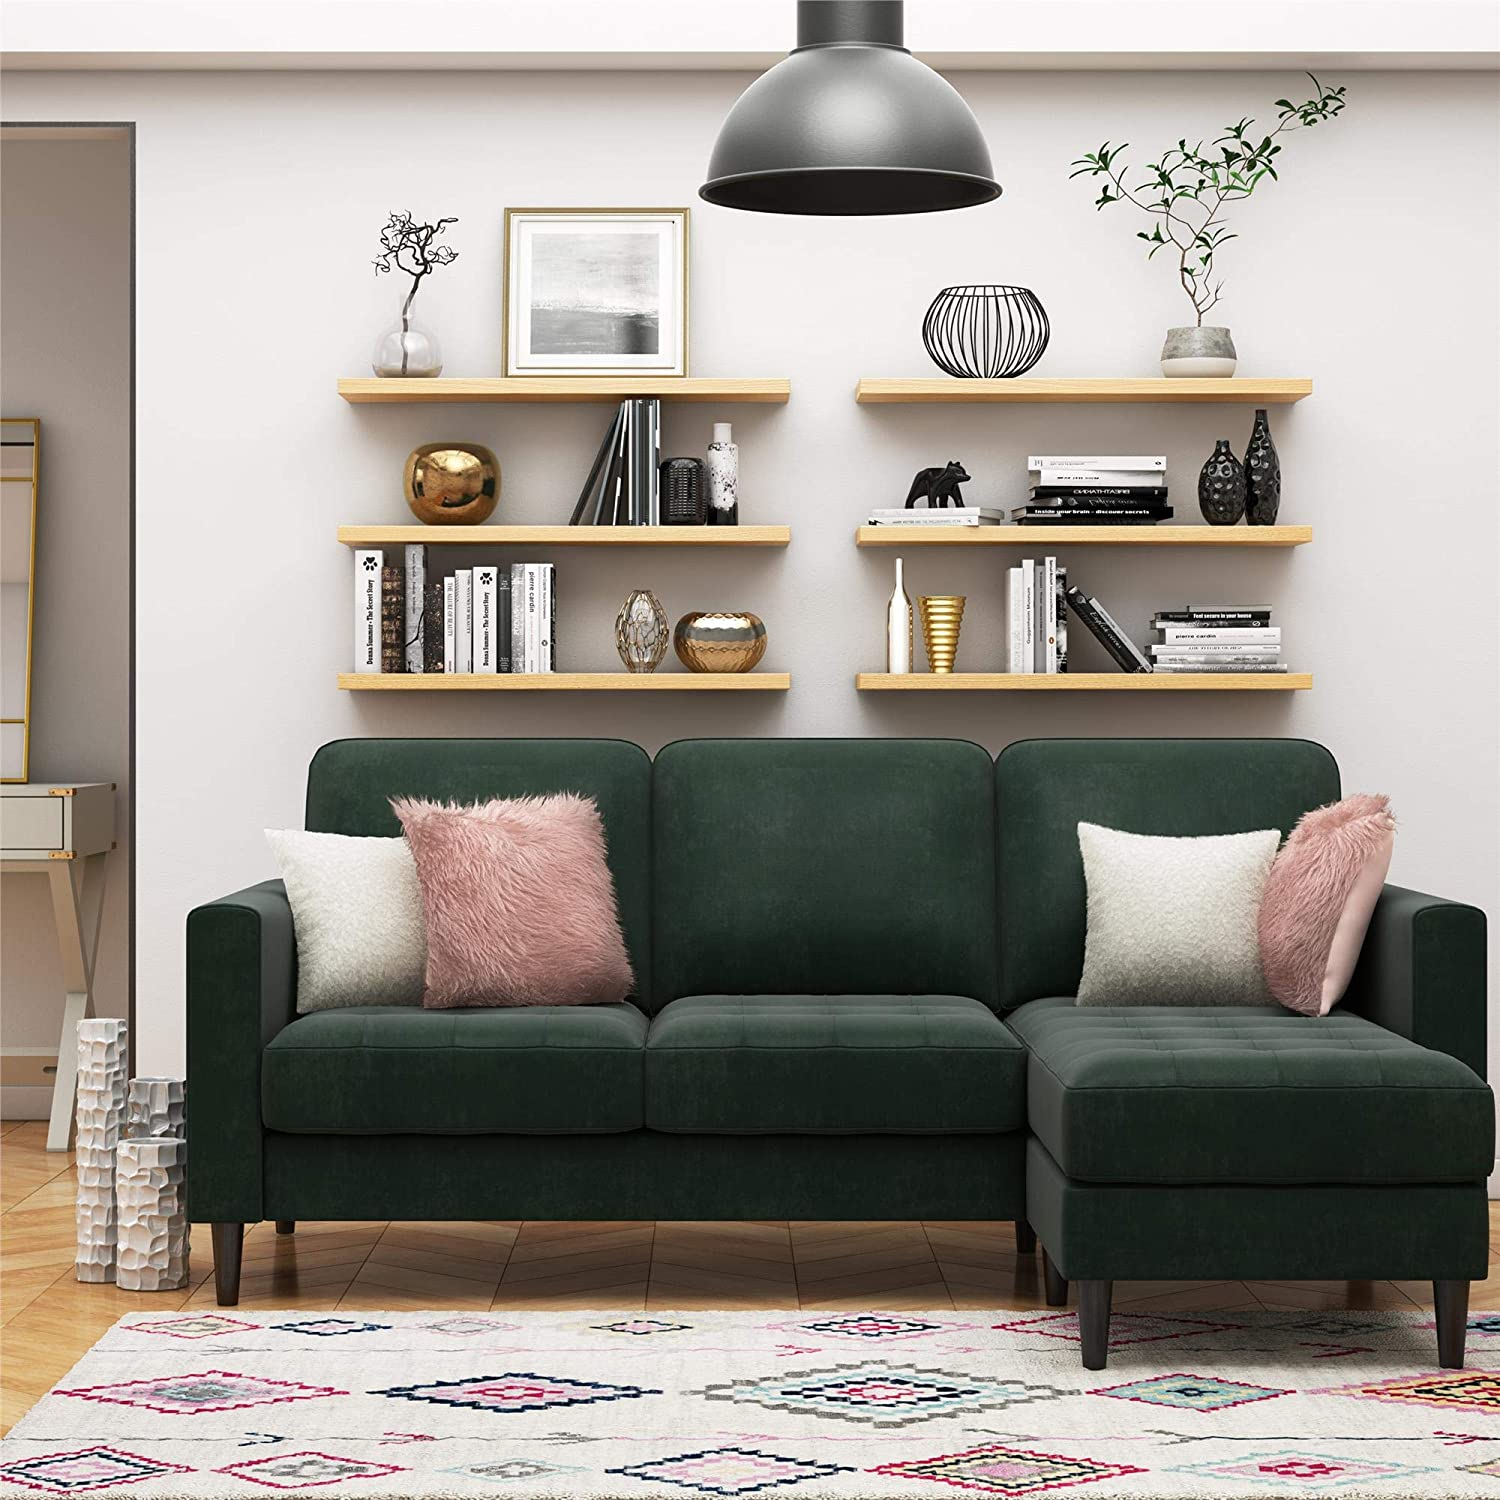 81-inch-small-sectional-sofa-with-dark-forest-green-velvet-upholstery-tufted-seats-removable-cushions-couch-with-floating-ottoman